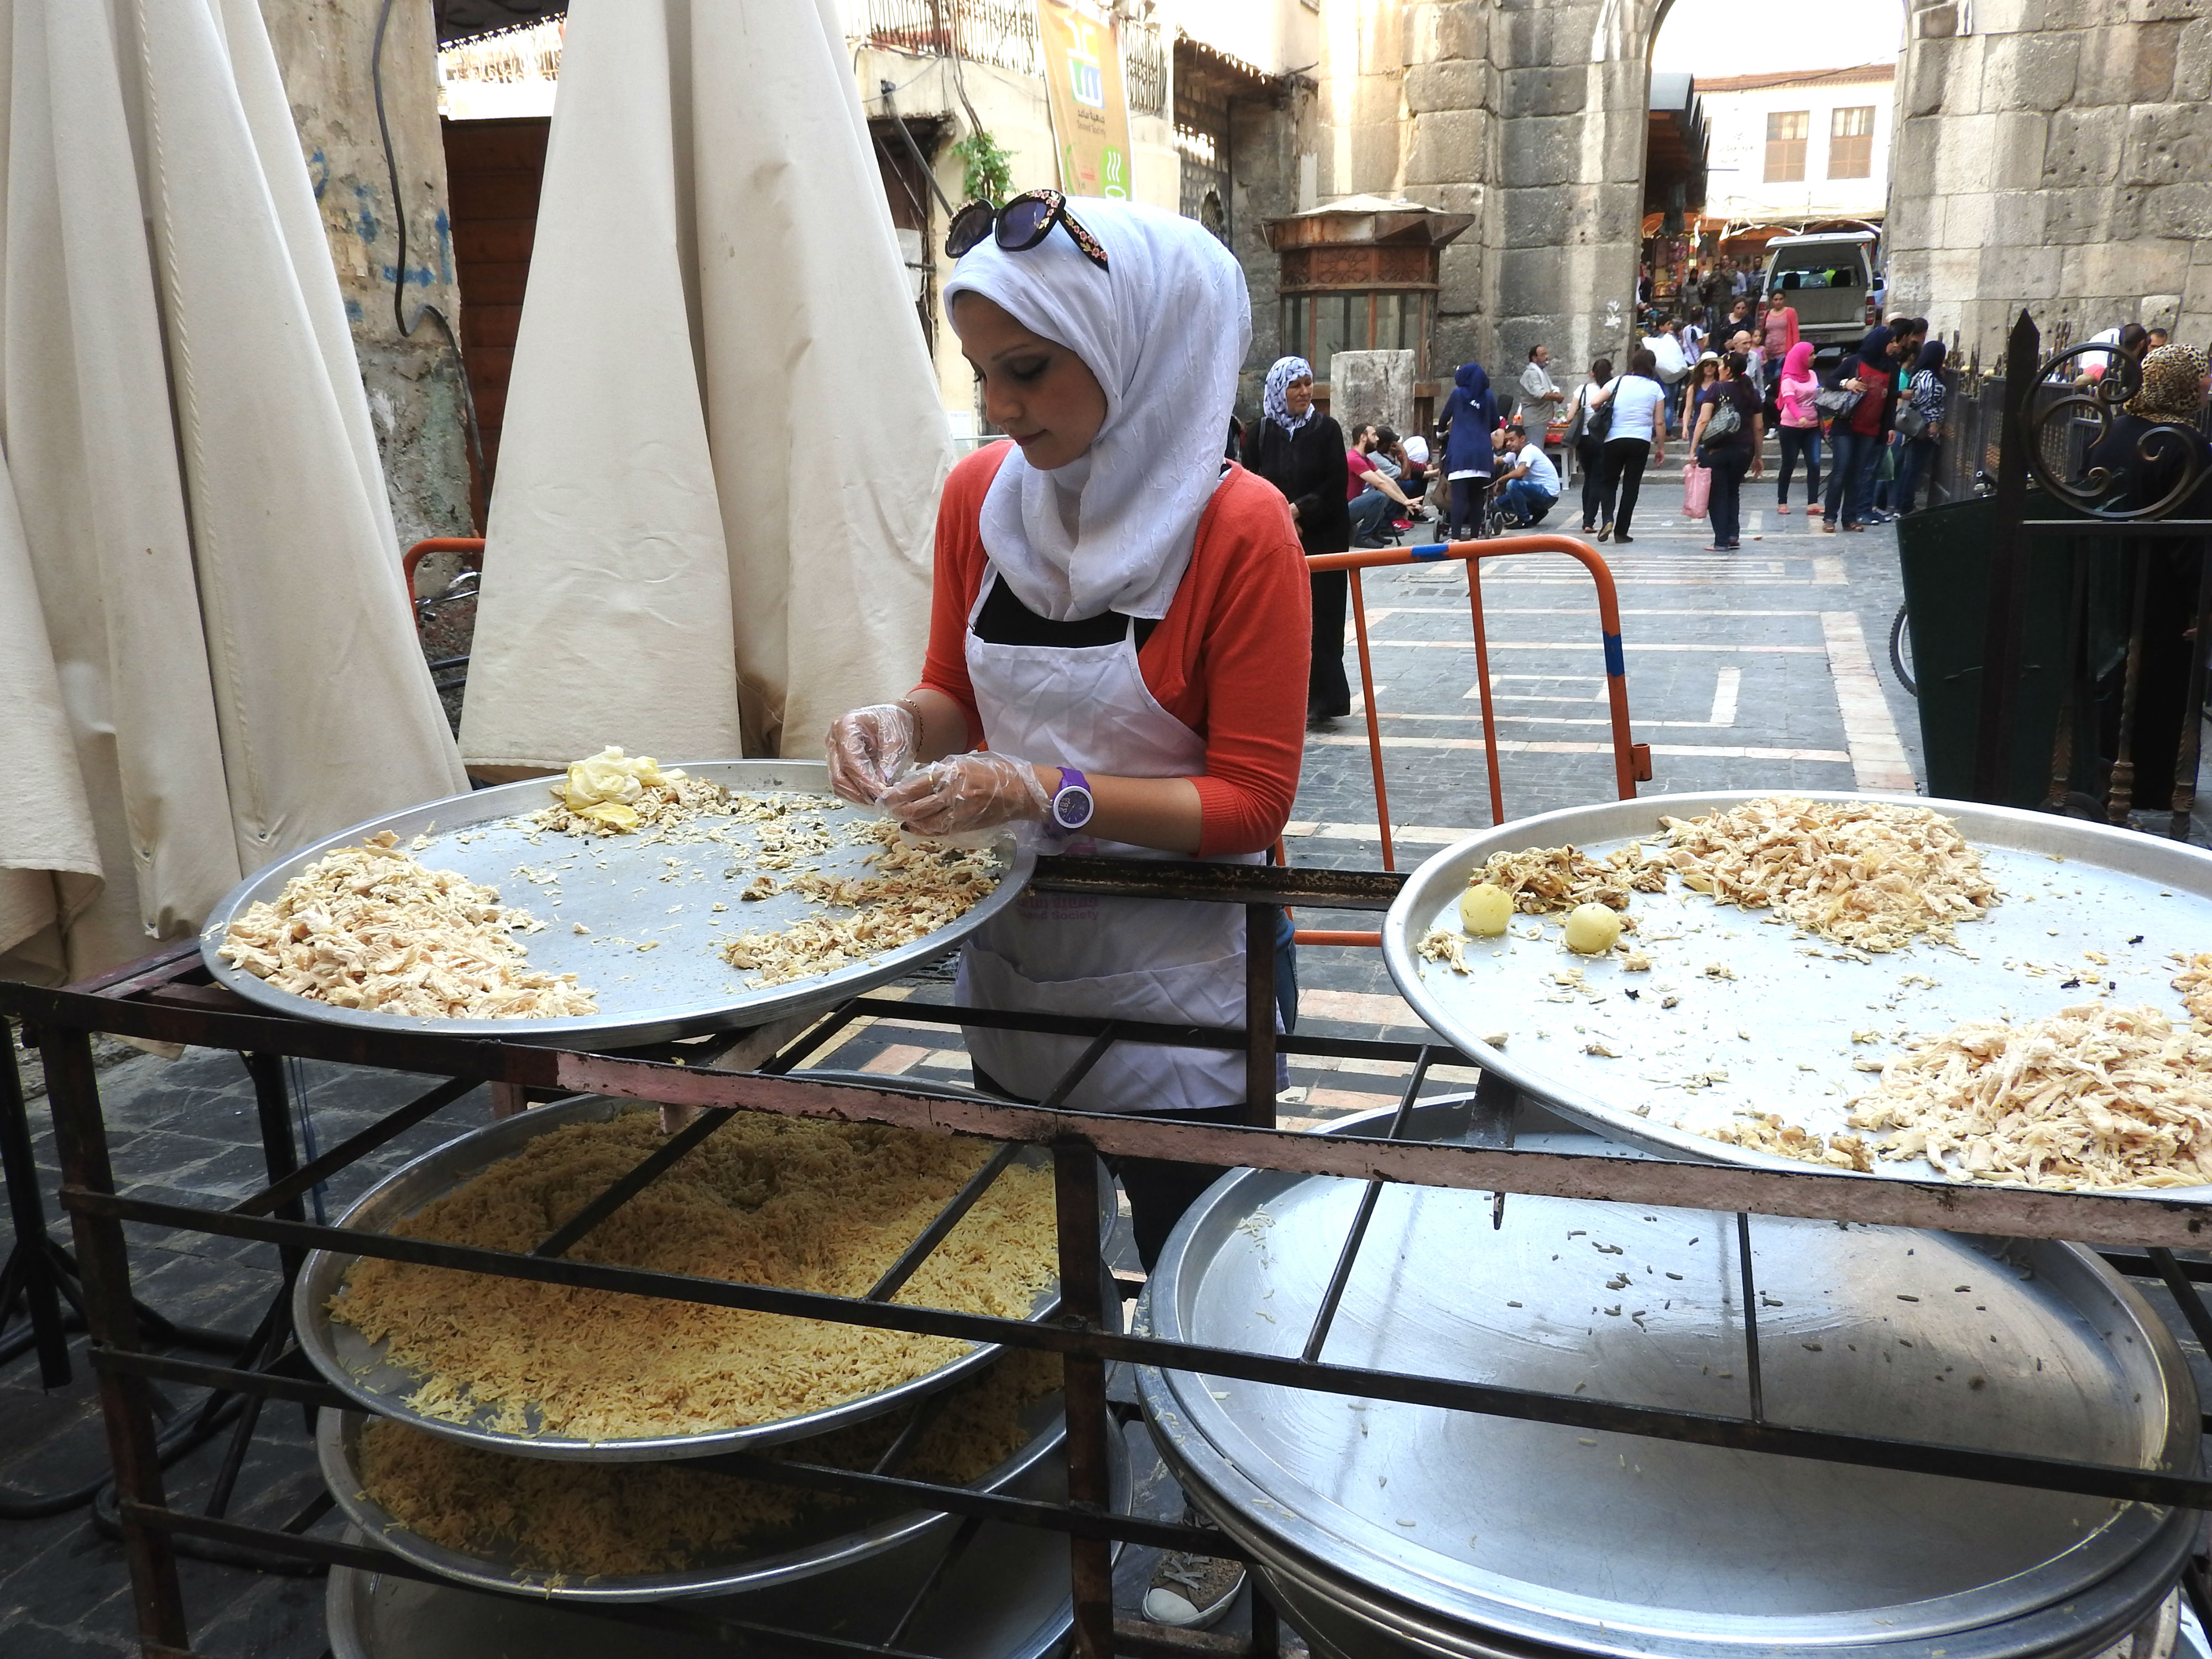 Behind the Umayyad Mosque in Old Damascus, one of tens of volunteers daily helps prepare the Iftar (fast-breaking) meals that the Saaed Association was serving to impoverished Damascus residents, even delivering to those unable to pick up meals themselves. Starting with 3,000 recipients, by the end of Ramadan, the volunteers were providing 10,000 meals daily in Damascus alone, with another combined 7,000 meals prepared in Hama and Homs.